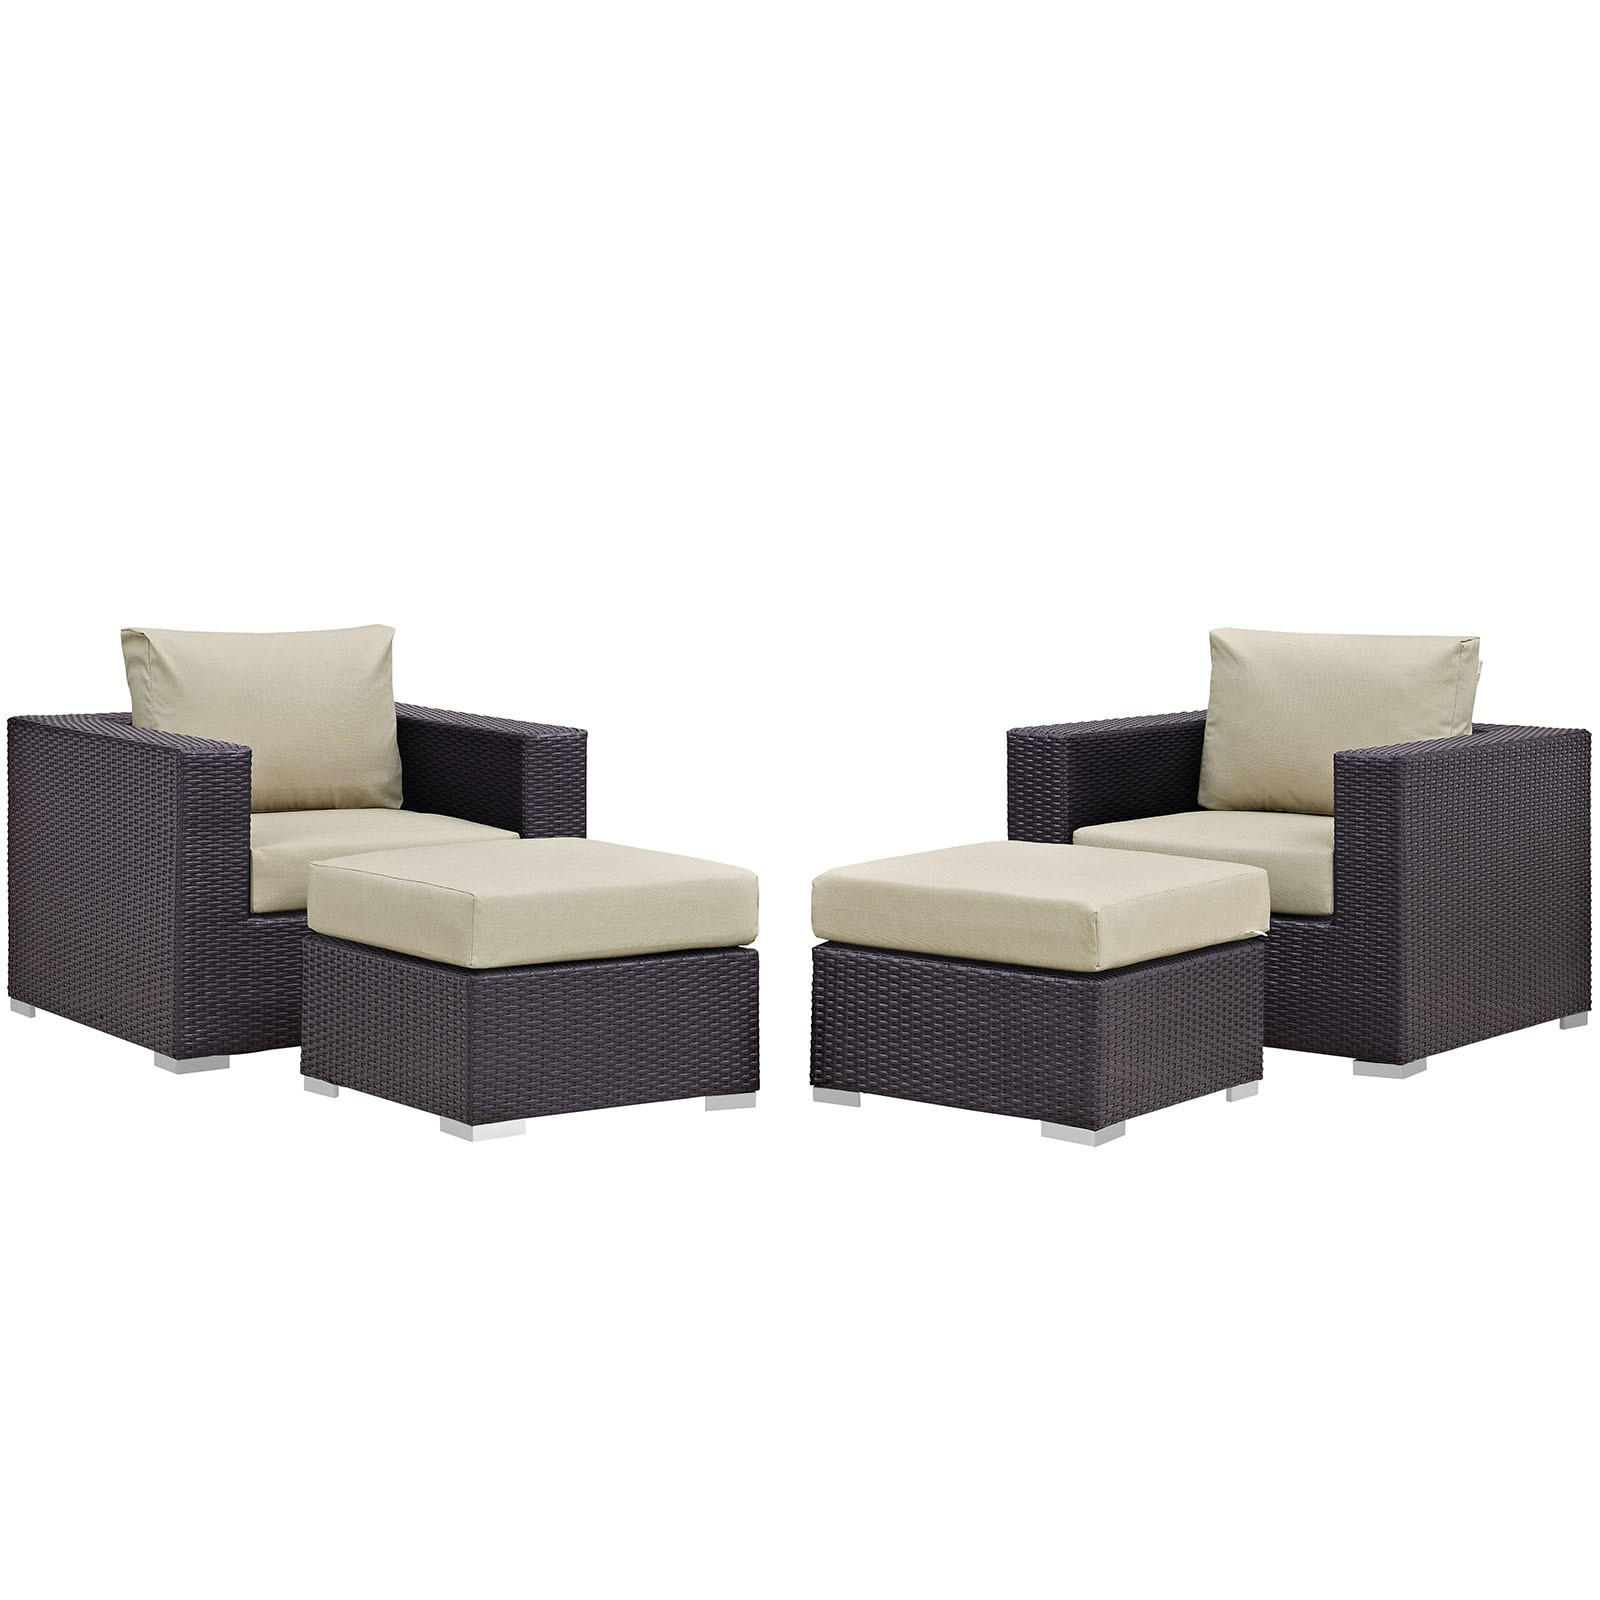 Convene 4 Piece Outdoor Patio Sectional Set